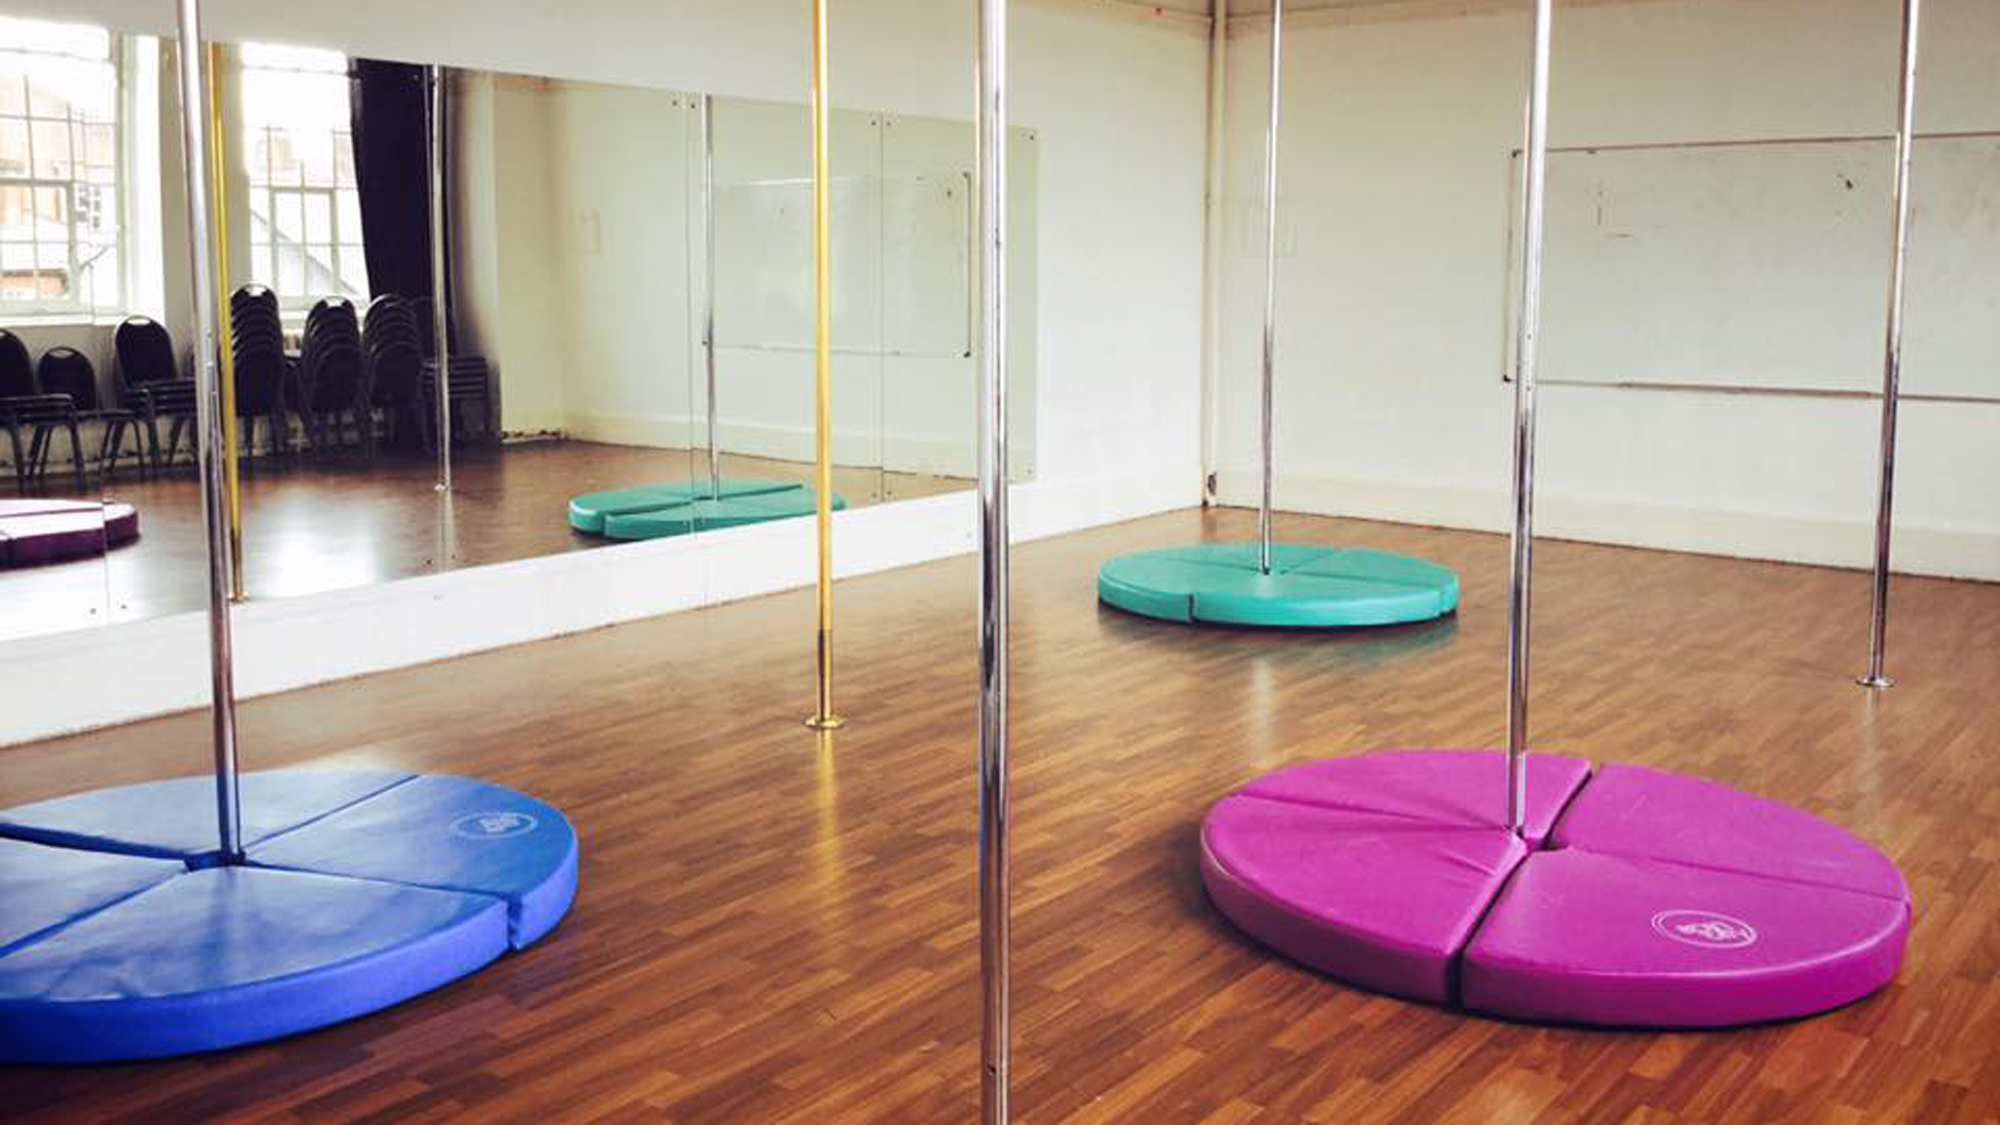 A dance studio with a mirrored wall and spin poles